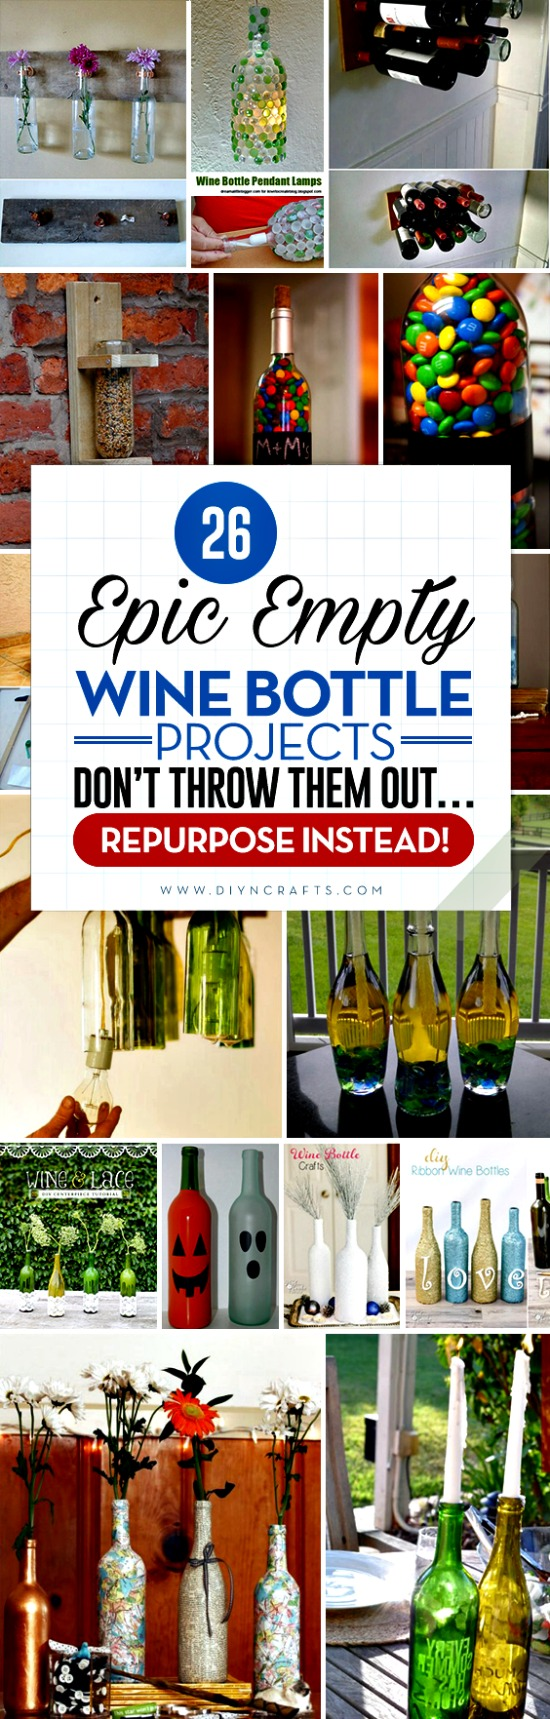 26 Epic Empty Wine Bottle Projects – Don't Throw them Out… Repurpose Instead! - Wine bottles come in all different shapes, sizes and hues, and those diverse qualities make them such versatile objects when it comes to upcycling or repurposing. I was rather taken aback when I came to realize just how many interesting and creative ways one can use these empty bottles, be it for something functional or pure décor.